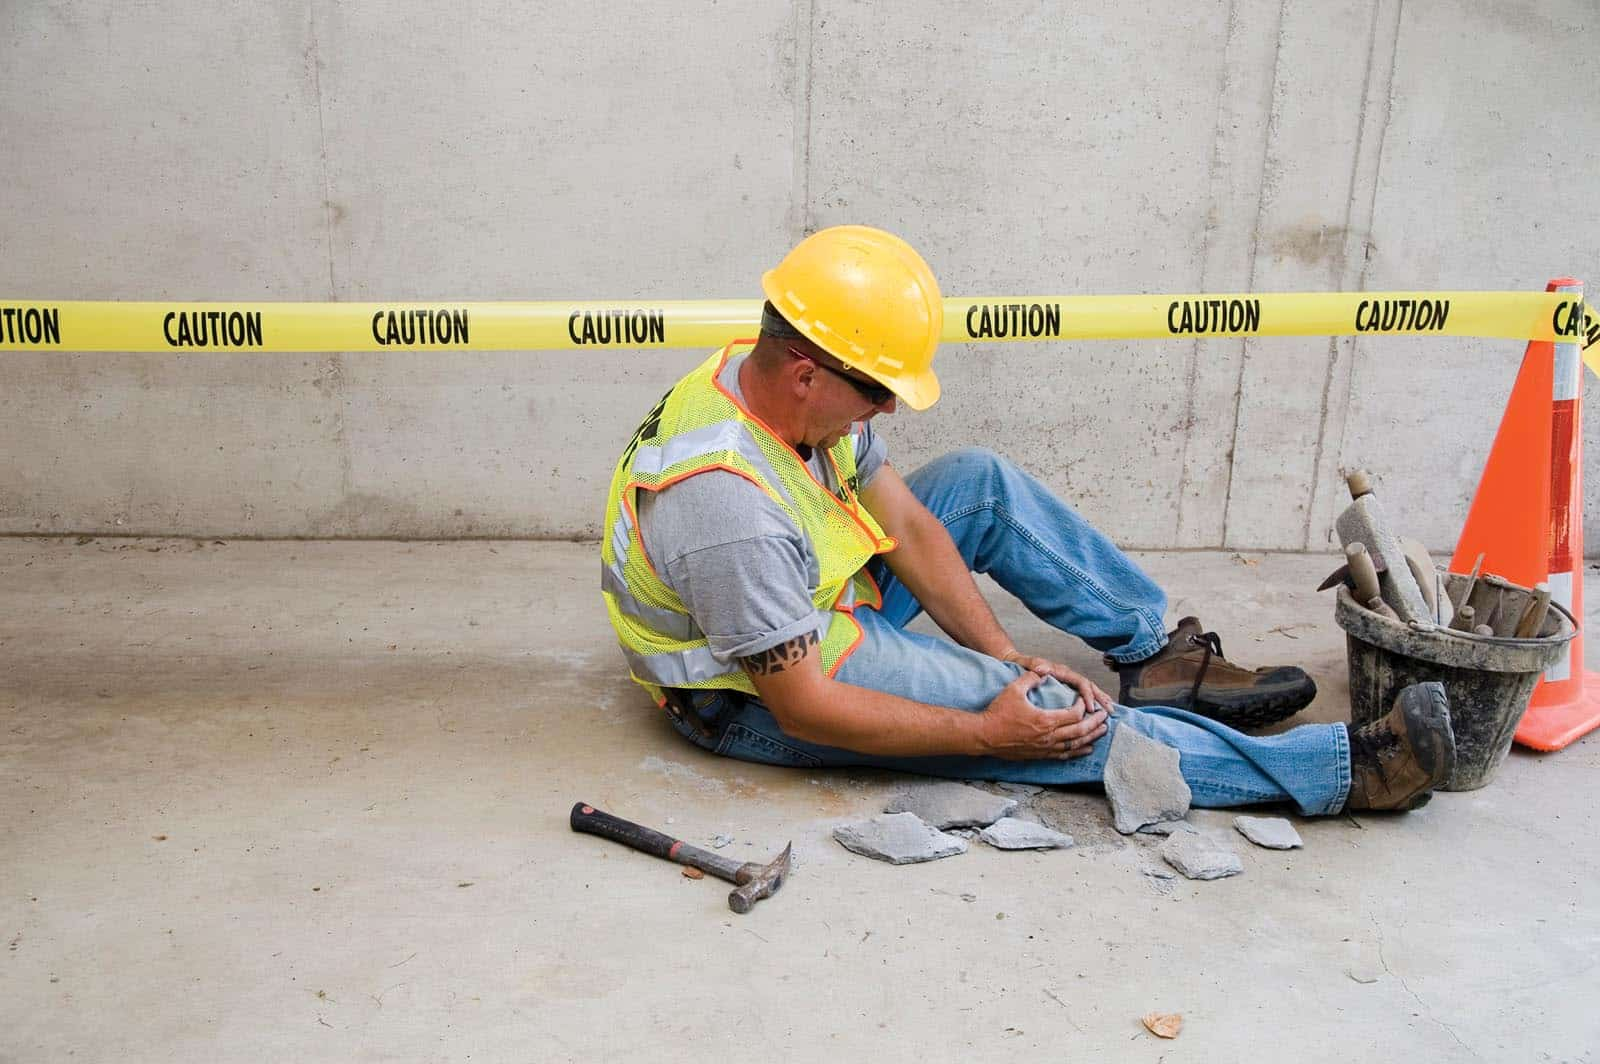 Howard Leasing Workers' Compensation Help and Services